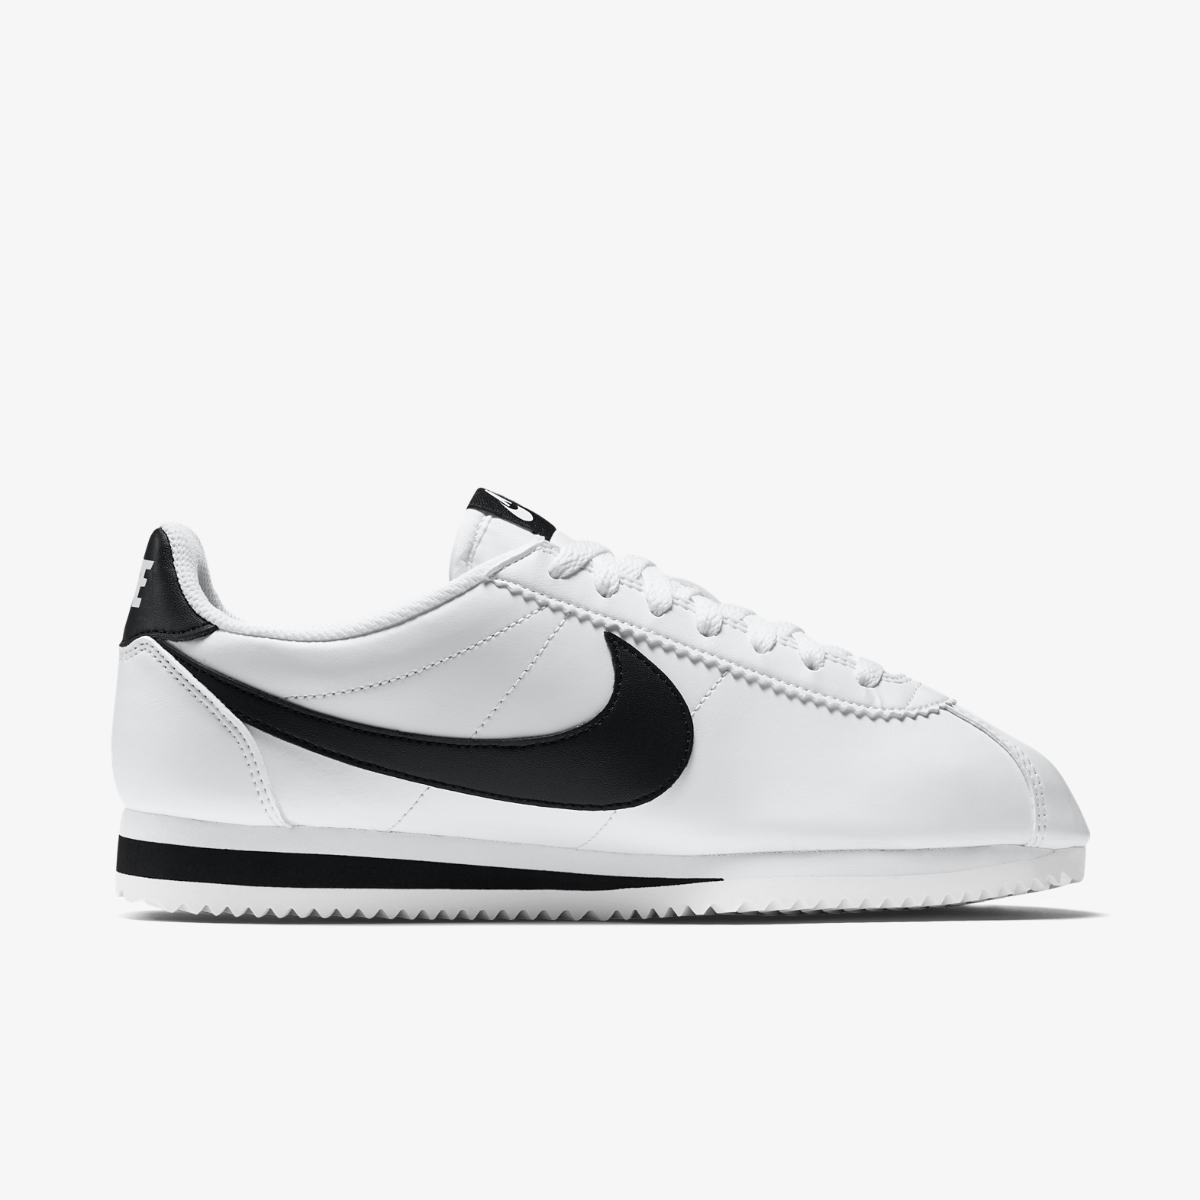 Кроссовки Nike Classic Cortez Leather 807471-101 фото